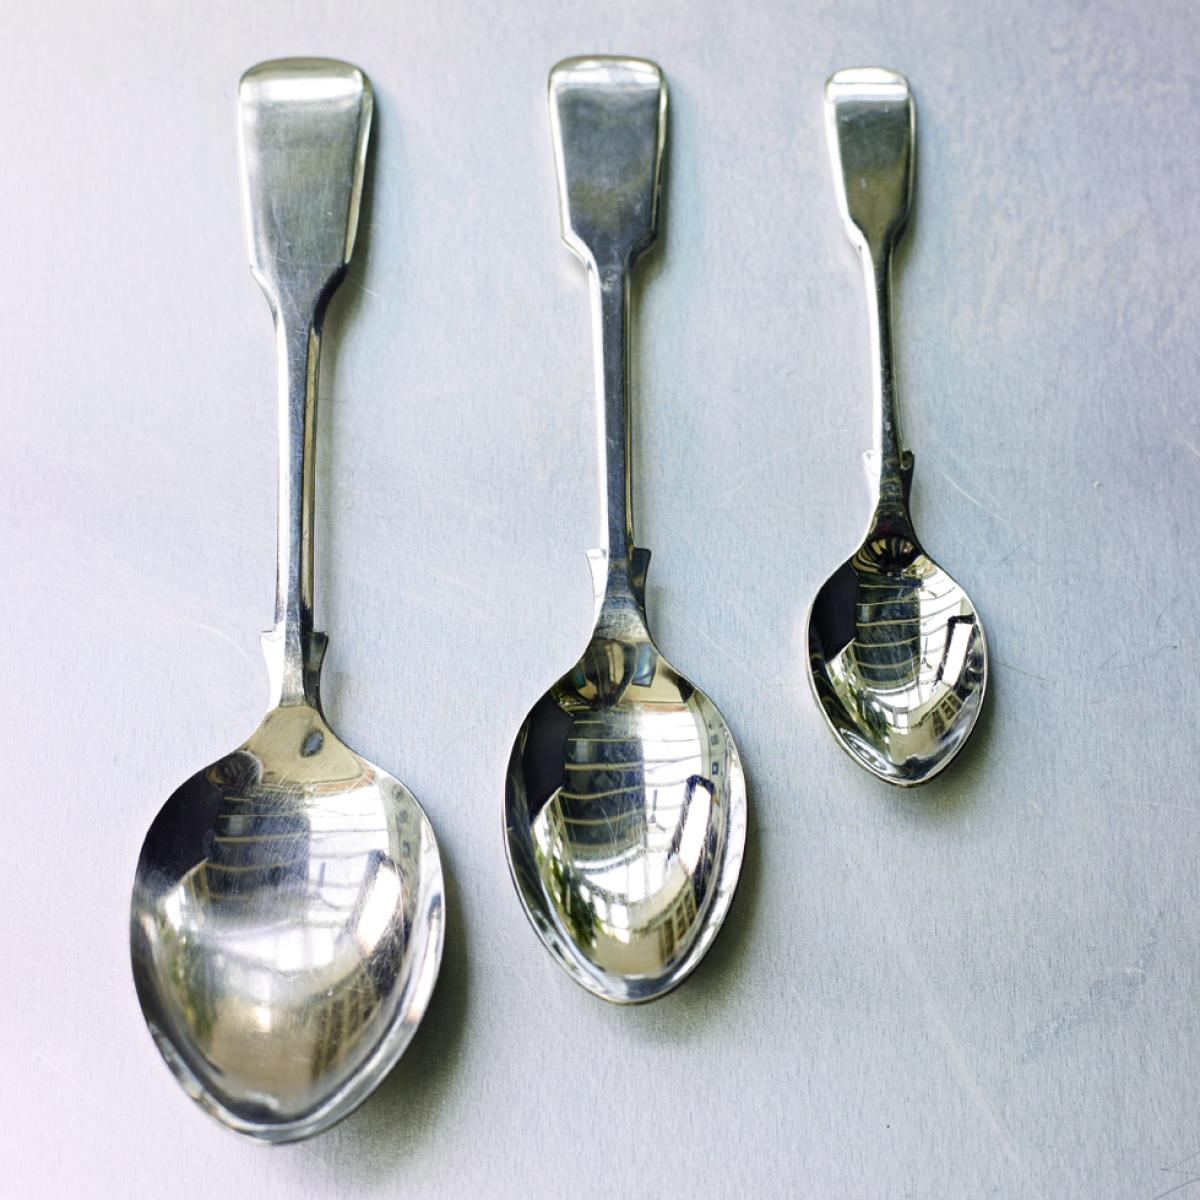 Equipment spoons